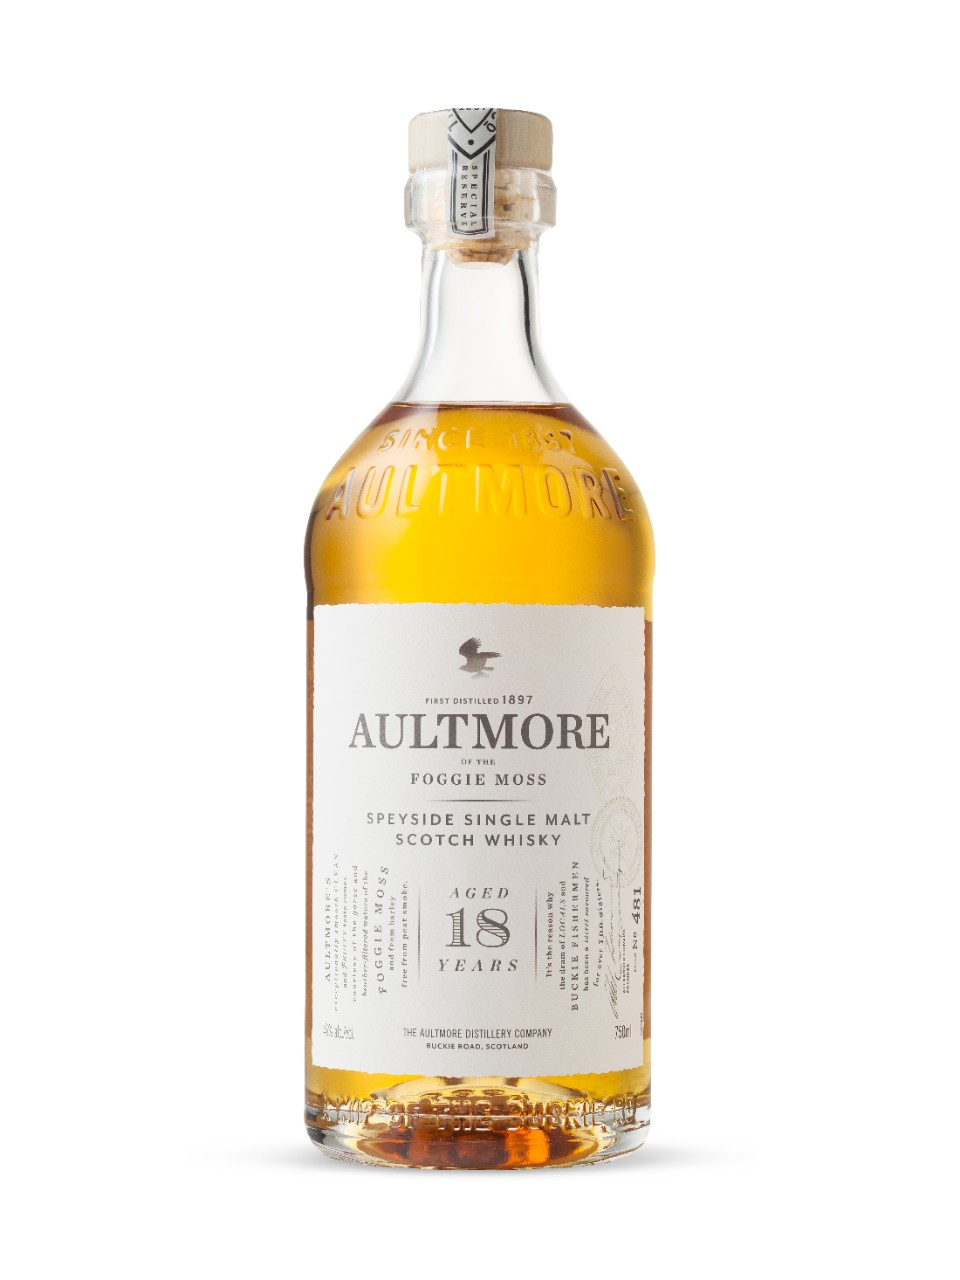 Aultmore 18 Year Old Speyside Single Malt Scotch Whisky